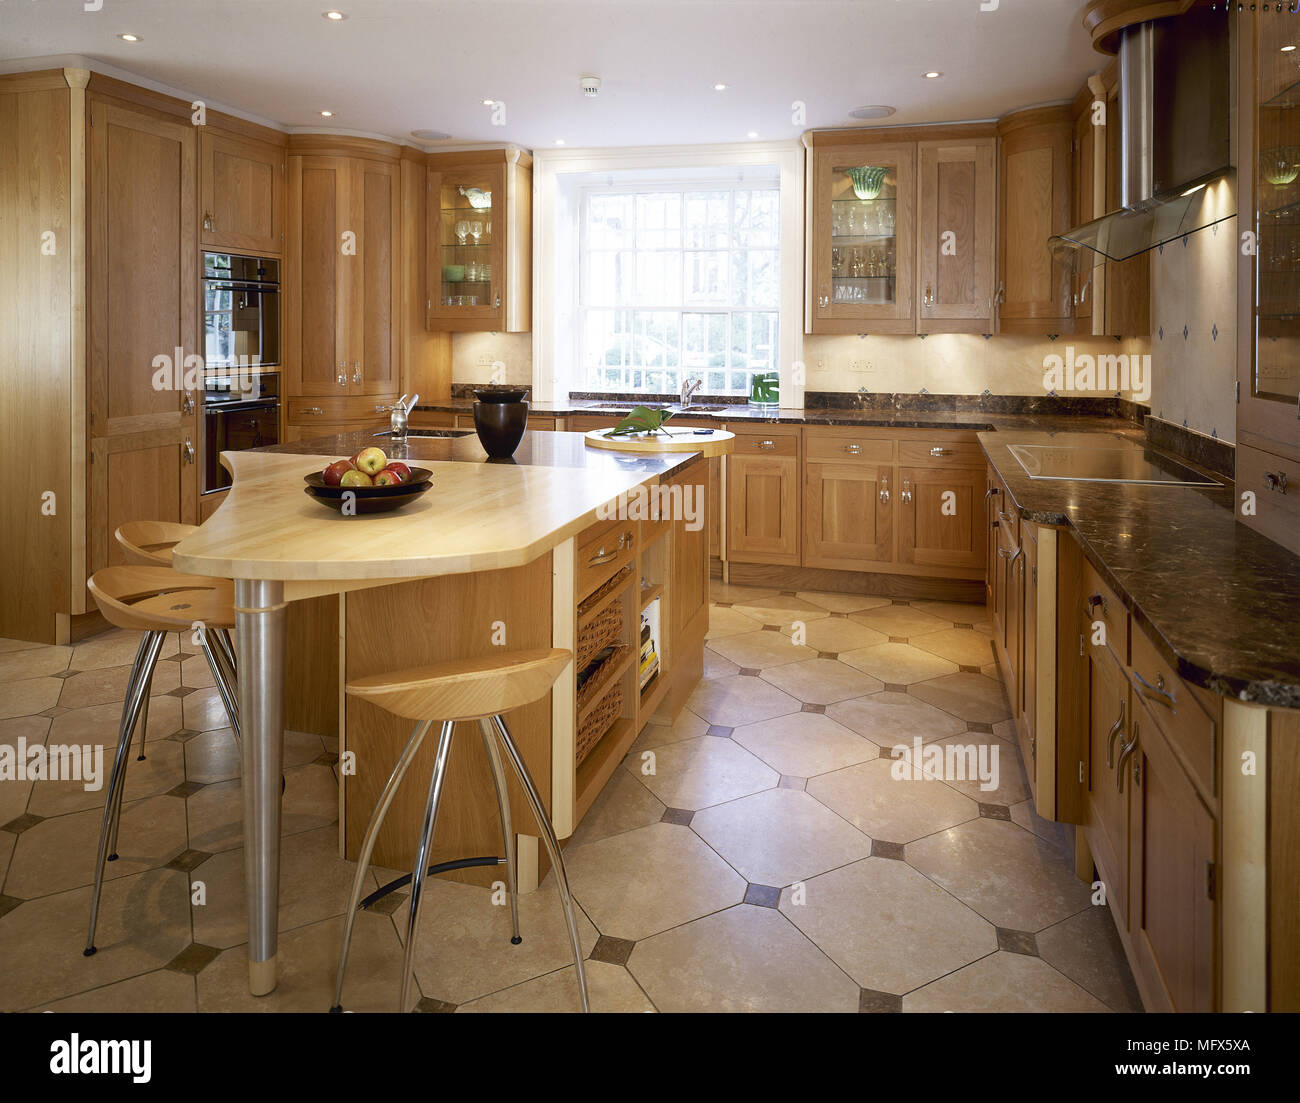 Modern kitchen with tiled floor, wooden cabinets, central island breakfast bar, and lit recessed lighting. - Stock Image